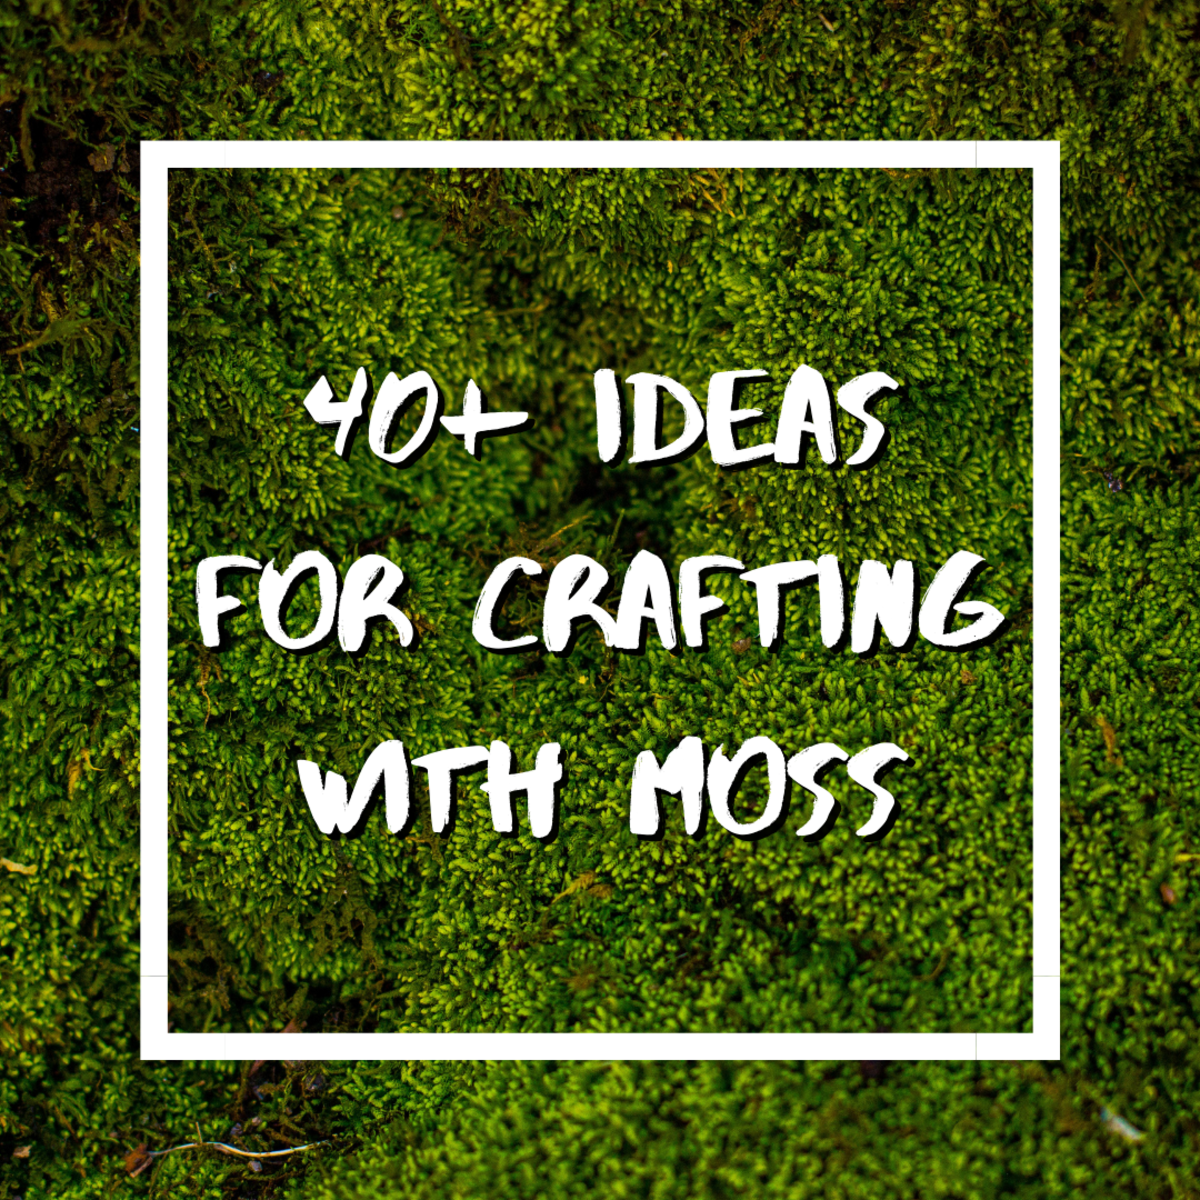 Ever wondered what to do with moss? Believe it or not, you can craft moss into a huge range of unique and fun DIY items!